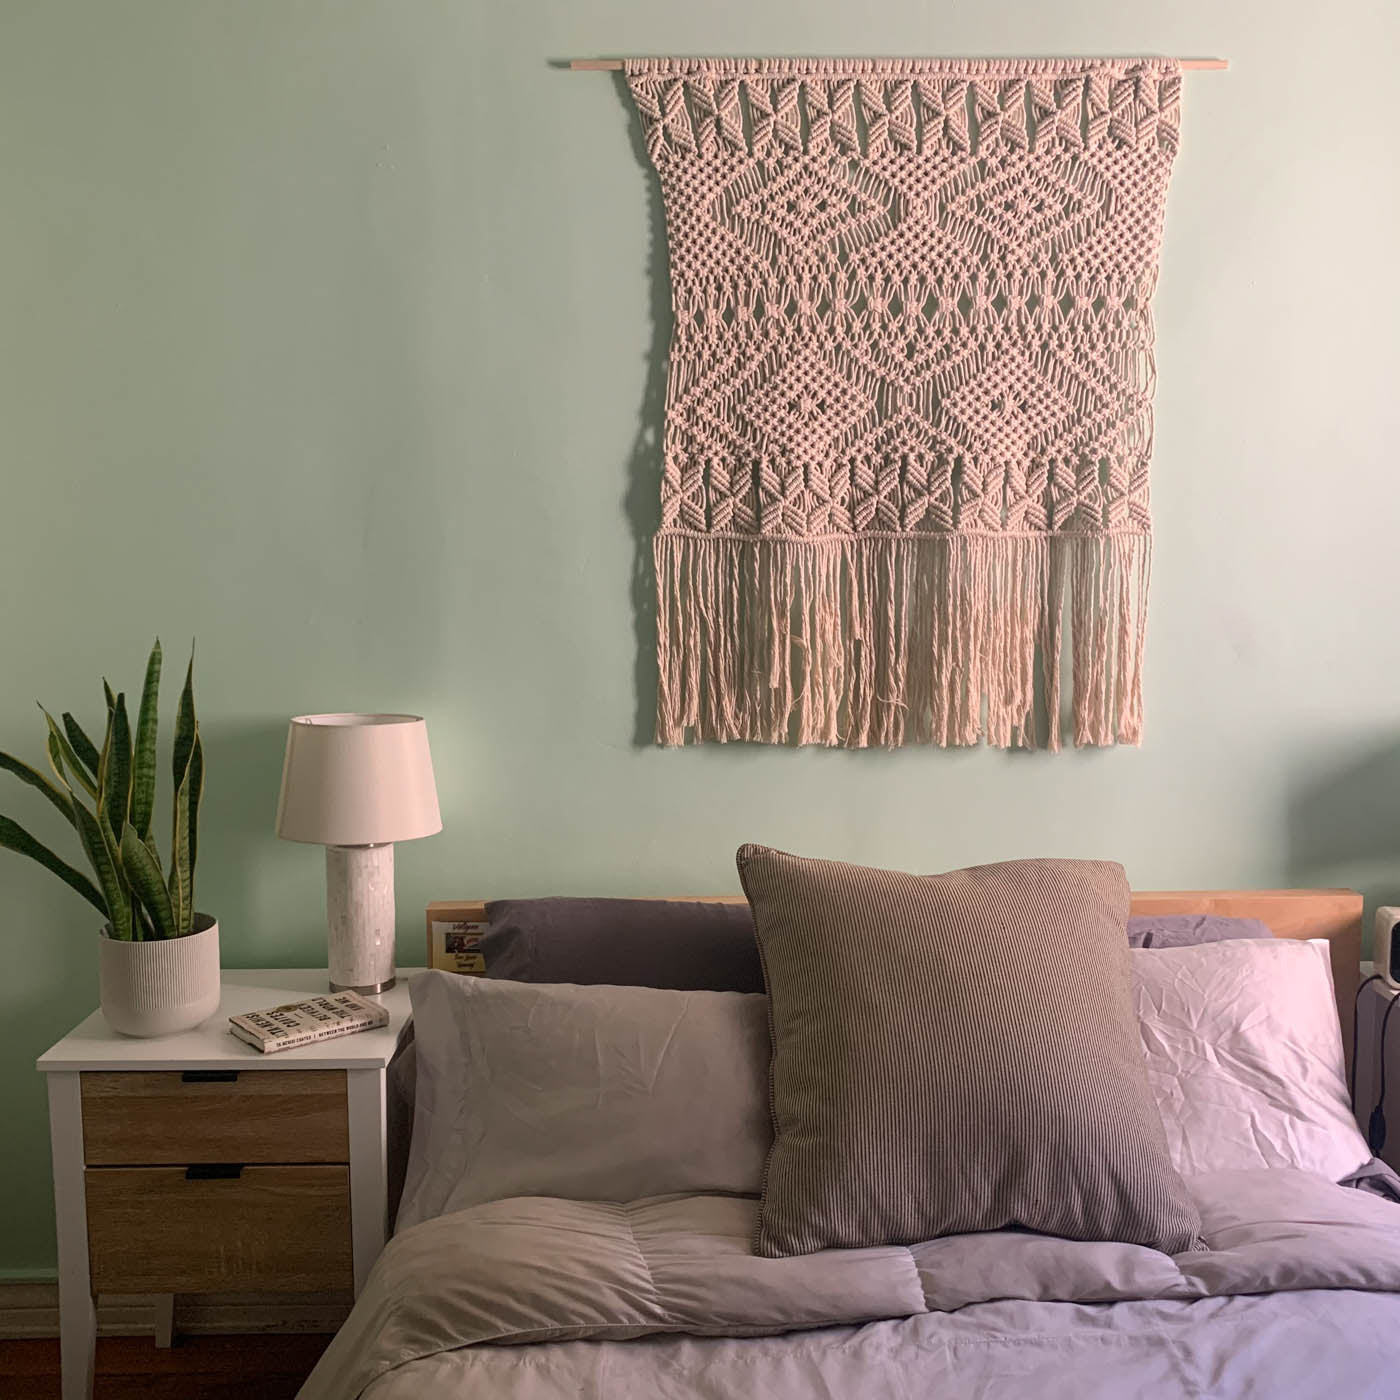 Macrame and bed